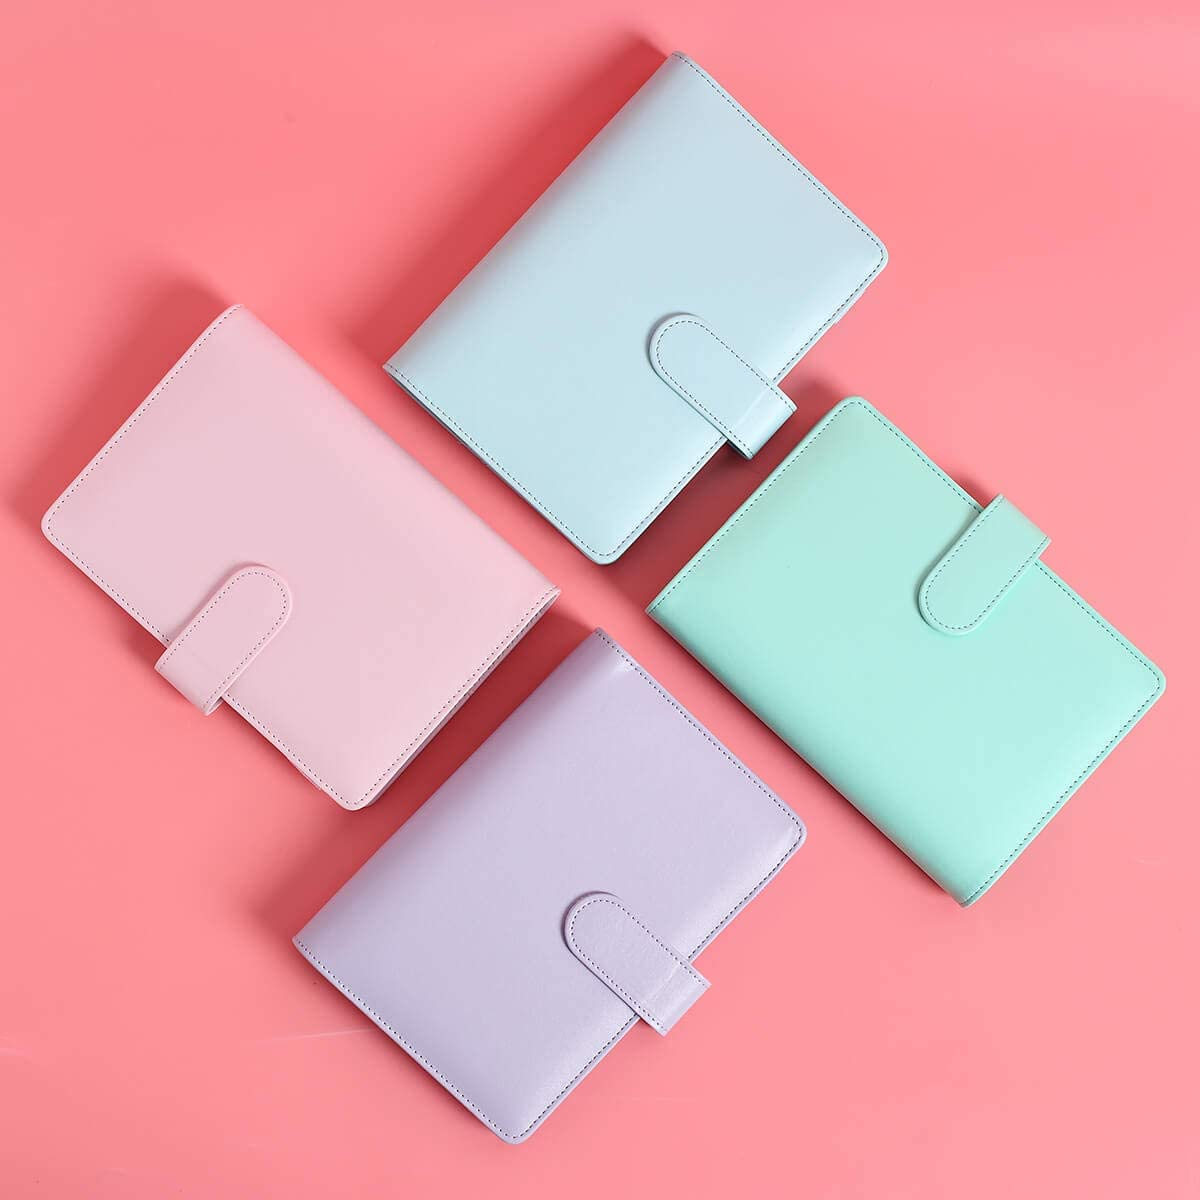 Personal Diary Schedule Organizer Planner Binder Cover with Magnetic Buckle Closure Refillable A6 Inner Filler Papers Journal Binder Cover with 6 Ring Lavender A6 PU Leather Notebook Binder